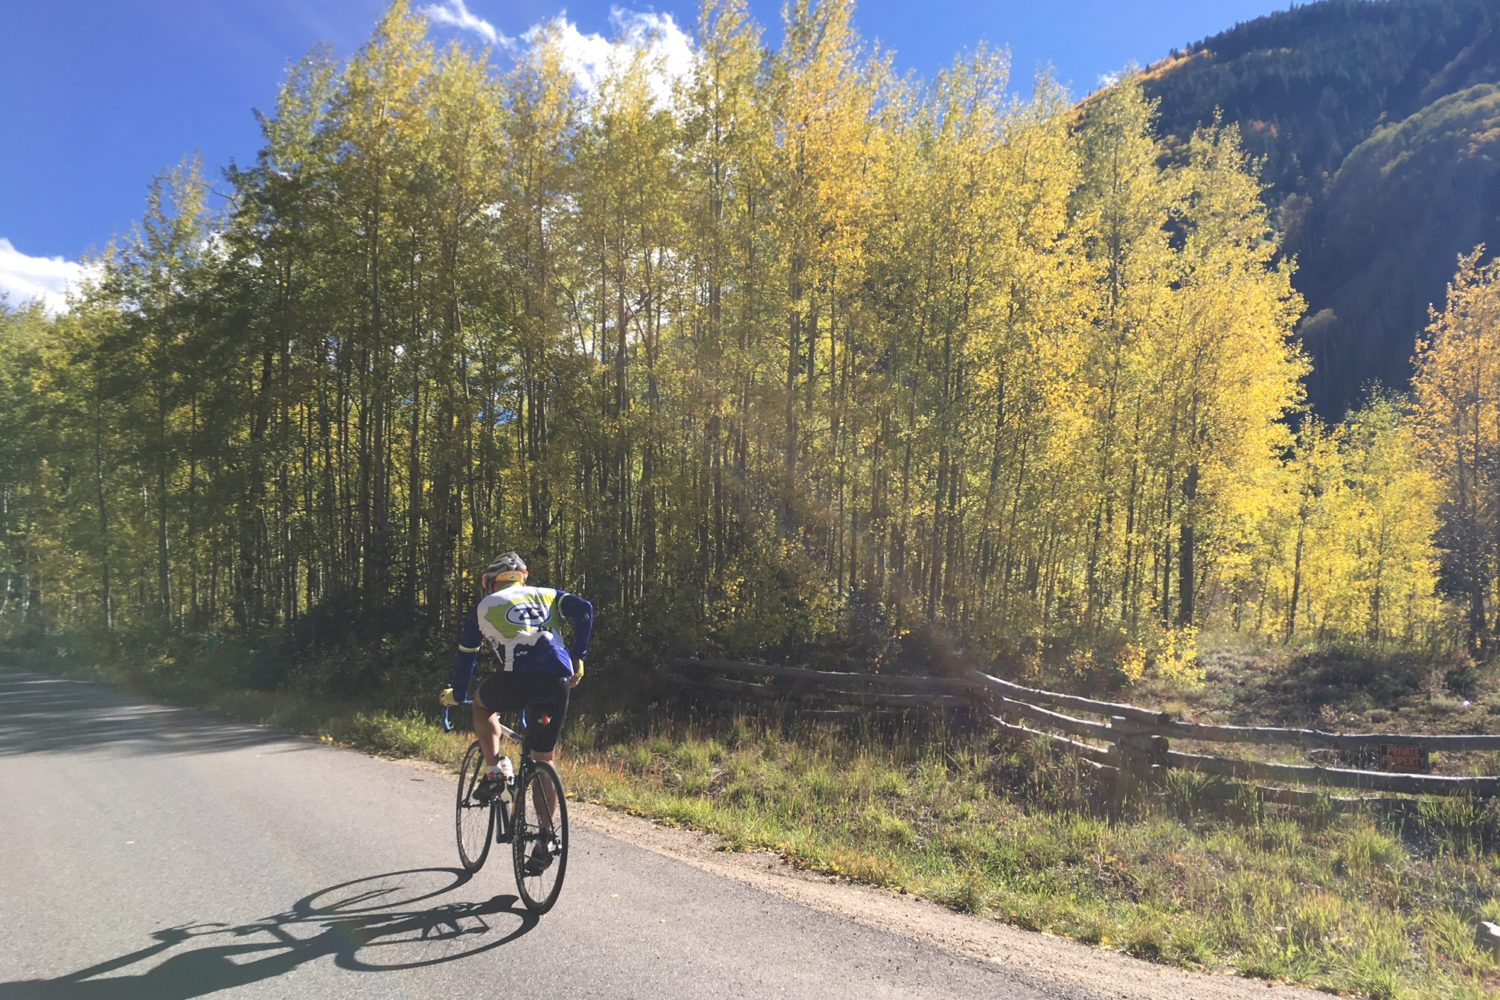 Colorado bike tour from Vail to Aspen gives you the best of the Rocky Mountains